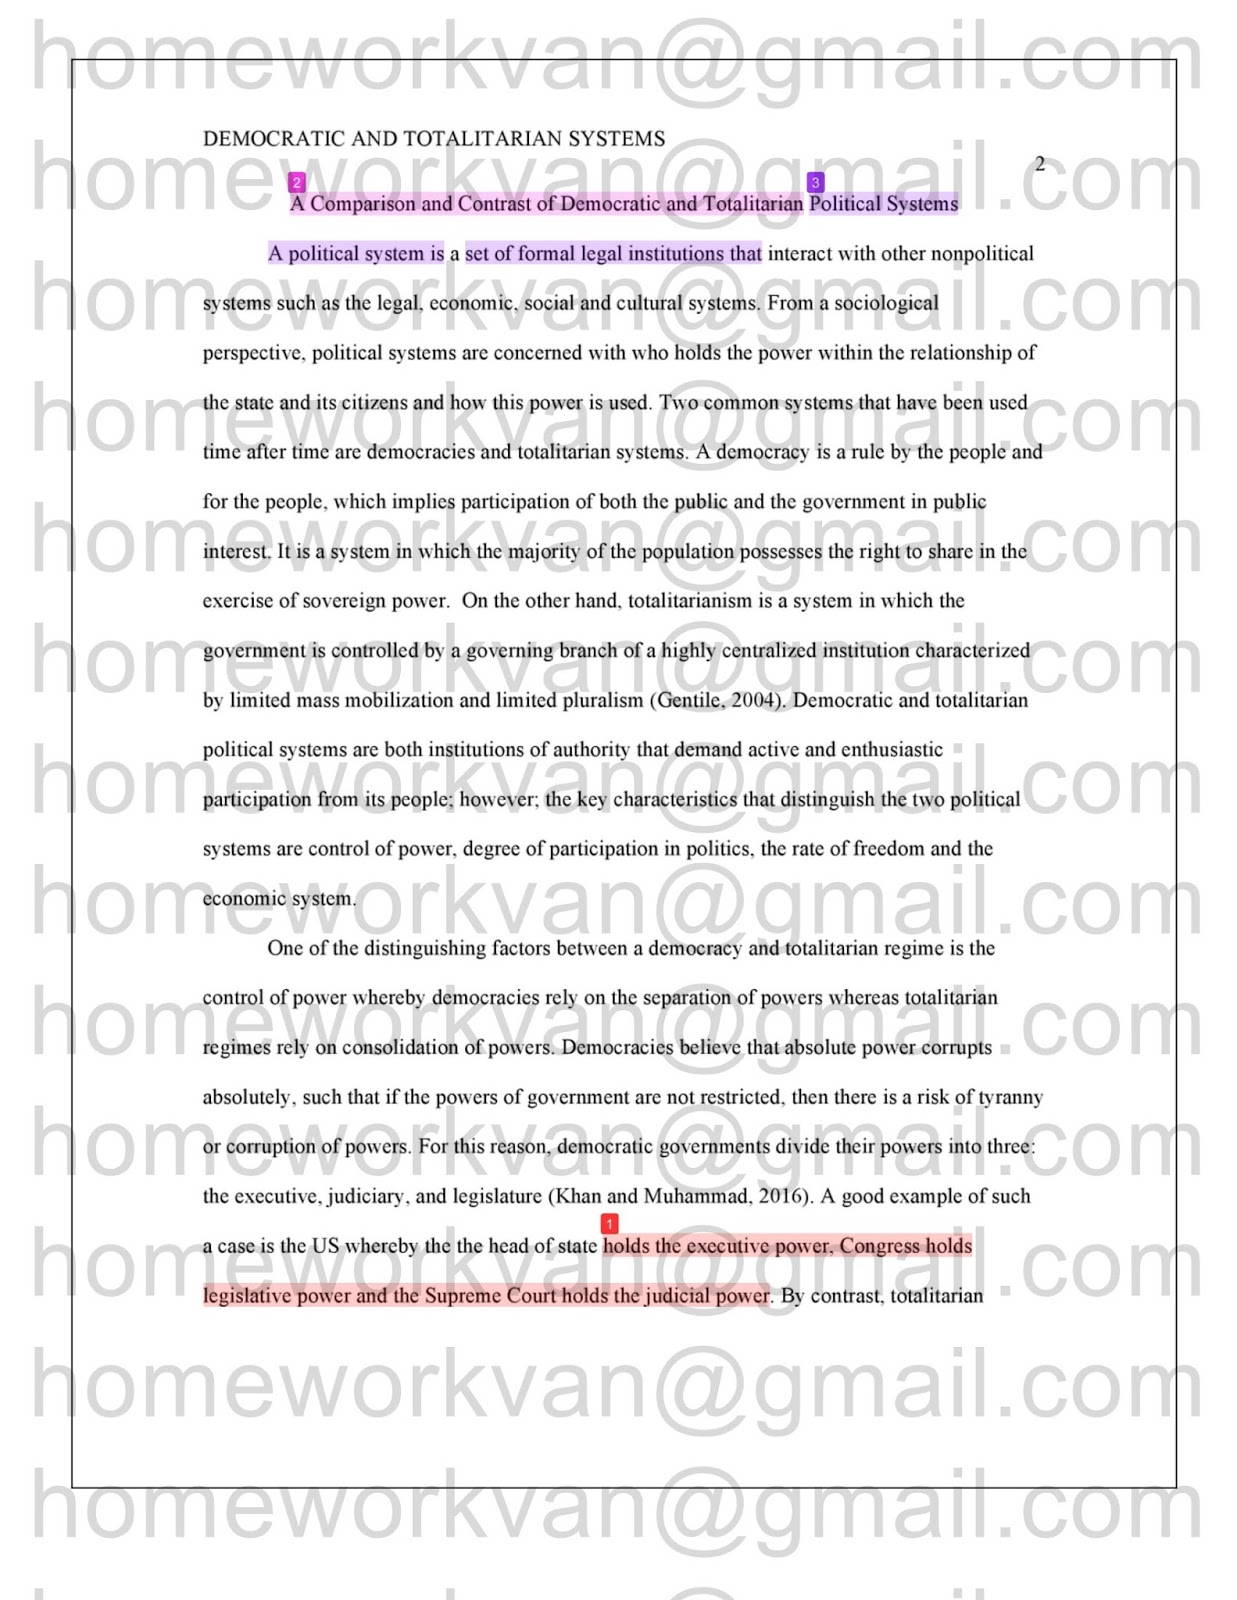 Homeworkvan Official Blog A Comparison Of Democratic And  The Following Is Plagiarism Report For A Comparison Of Democratic And  Totalitarian Political Systems  Compare And Contrast Essay Sample By  Homeworkvan Fifth Business Essay also Essays On Science  What Is Thesis In Essay